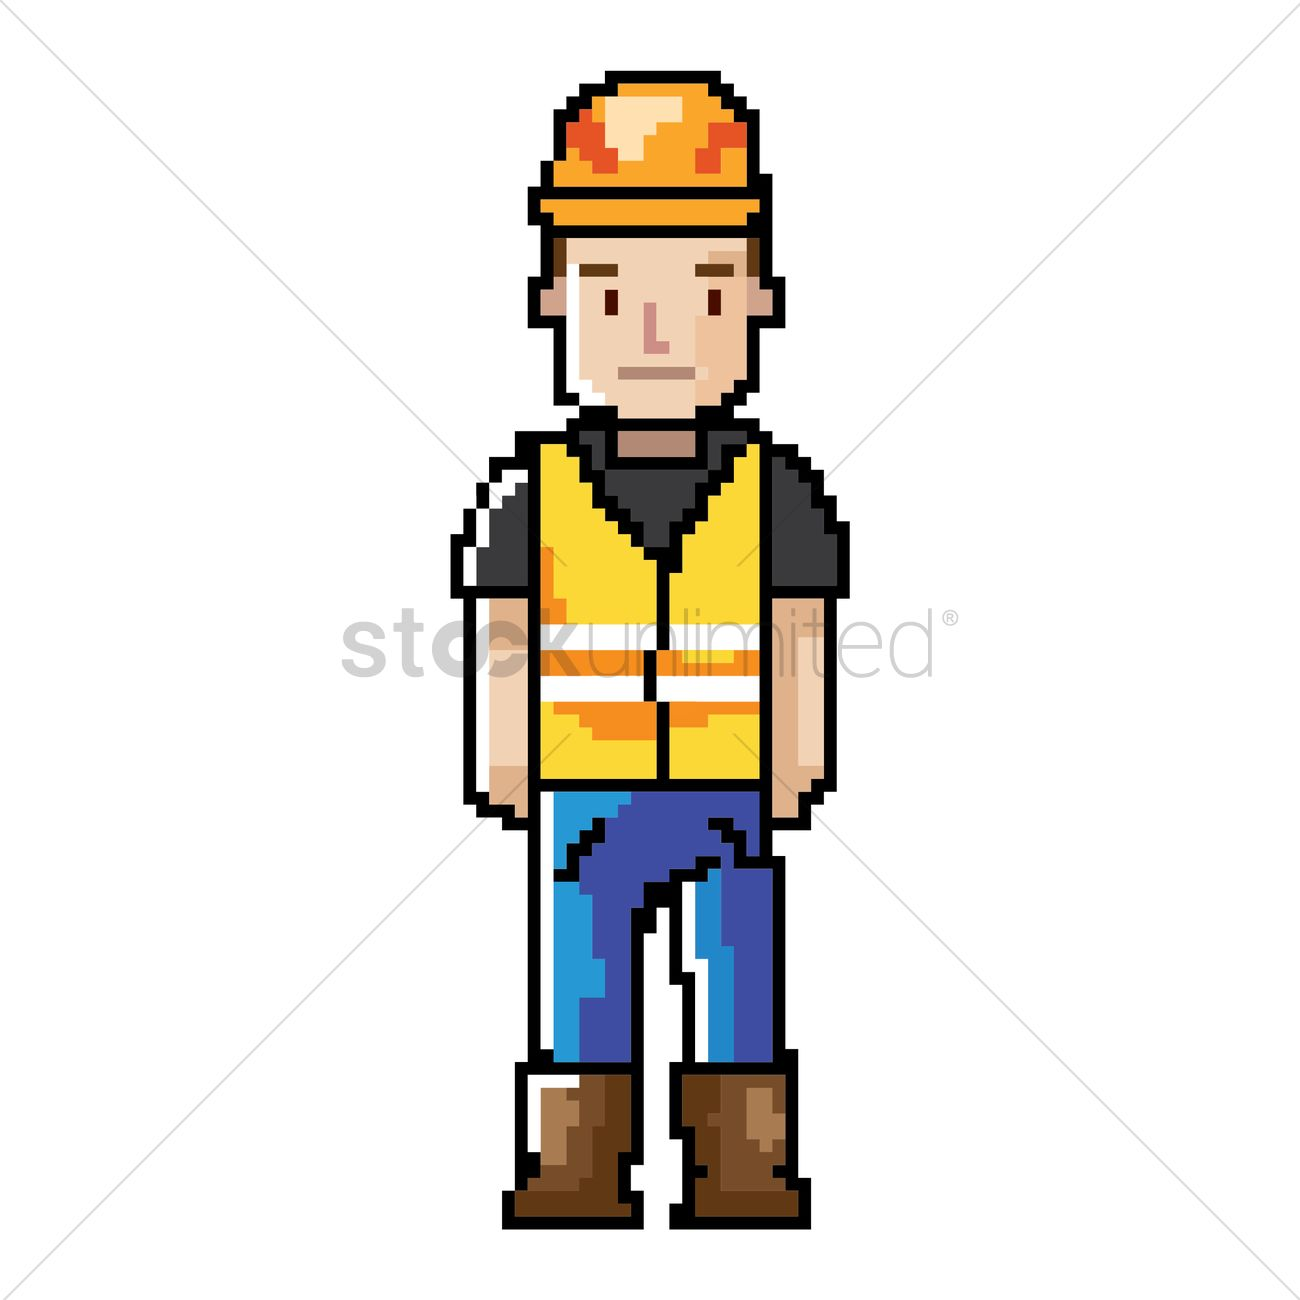 Pixel Art Construction Worker Vector Graphic